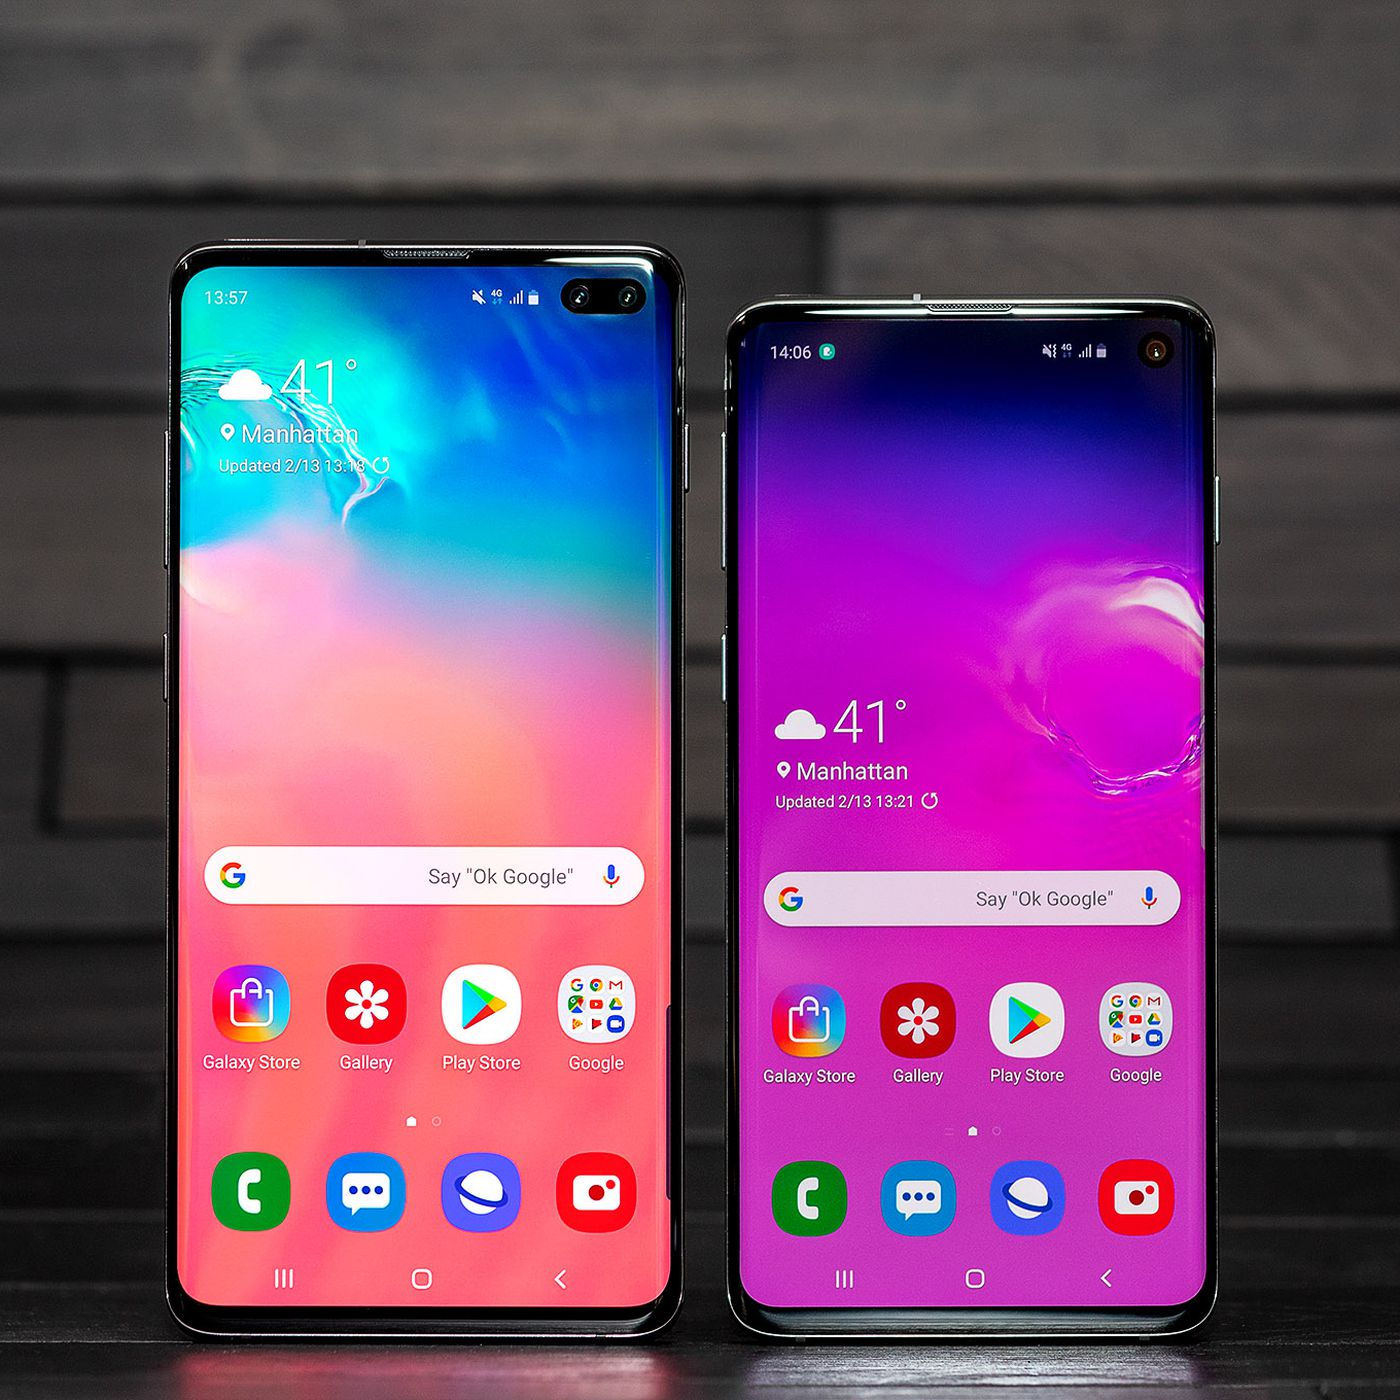 Samsung Galaxy S10 announced: price, hands-on, and release date